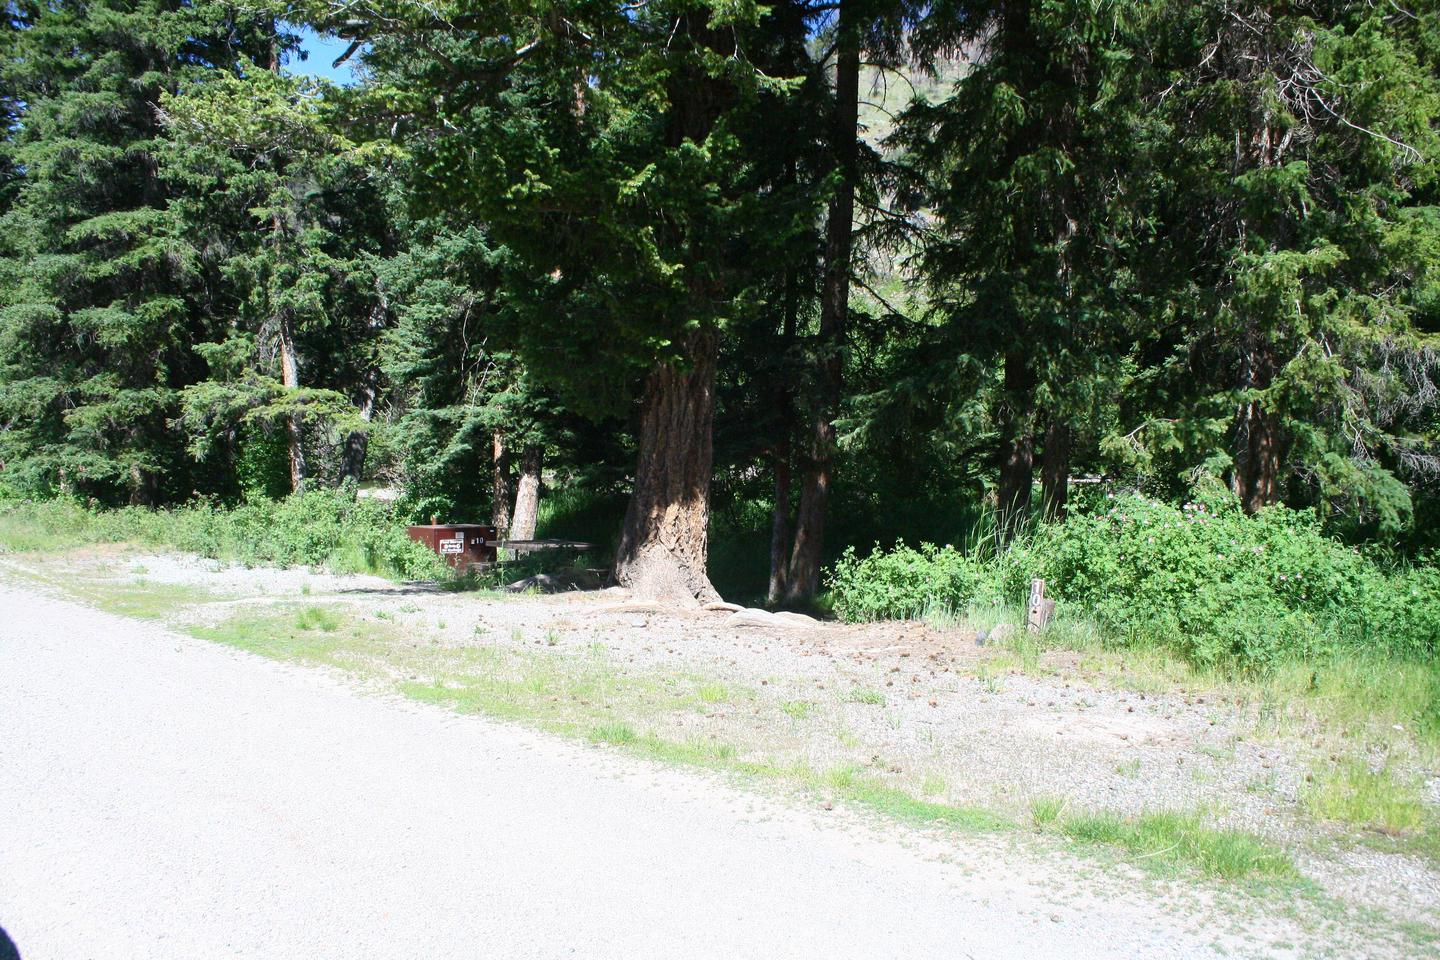 Slough Creek Campground site #10..Slough Creek Campground site #10